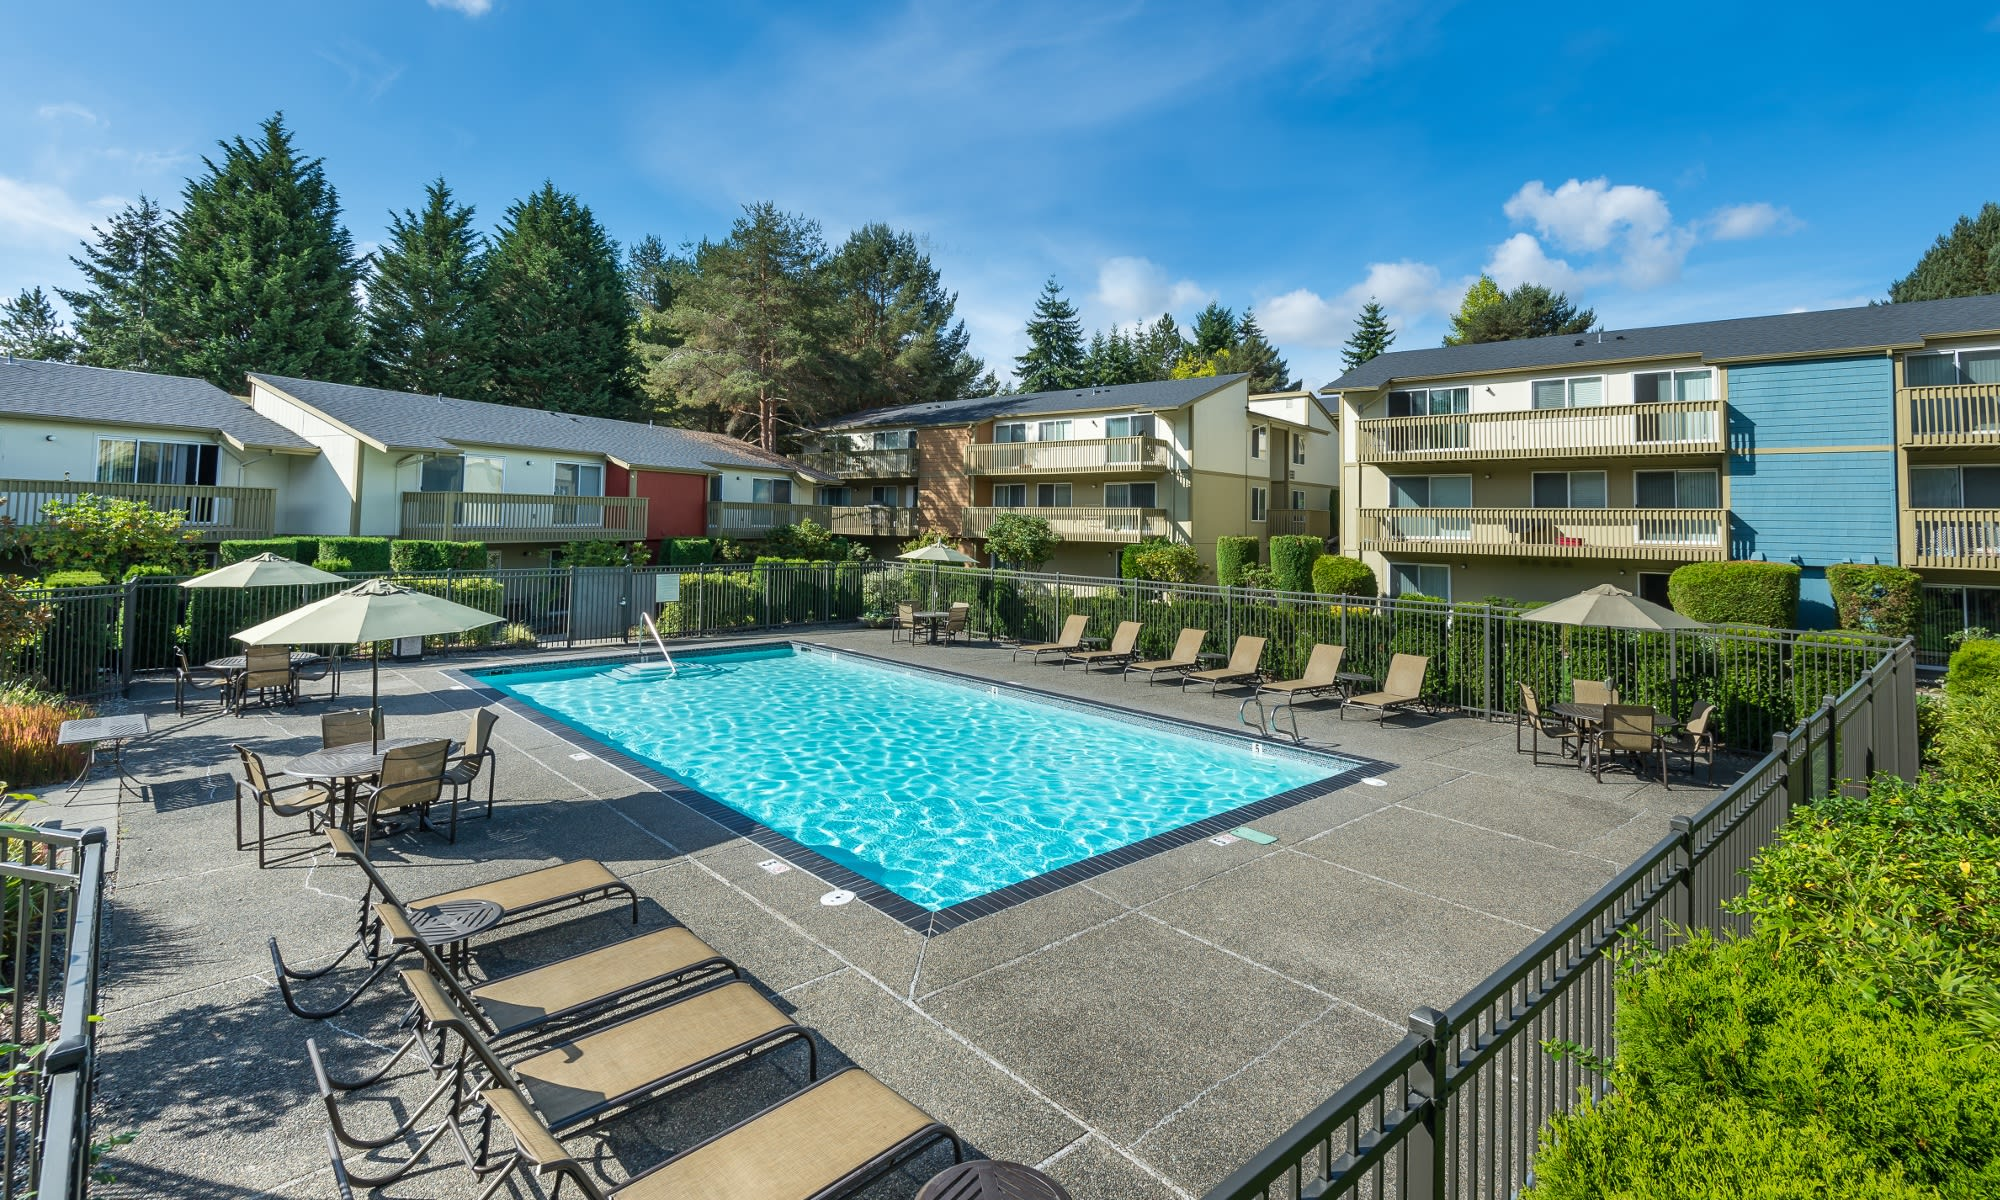 Edgewood Park Apartments in Bellevue, Washington